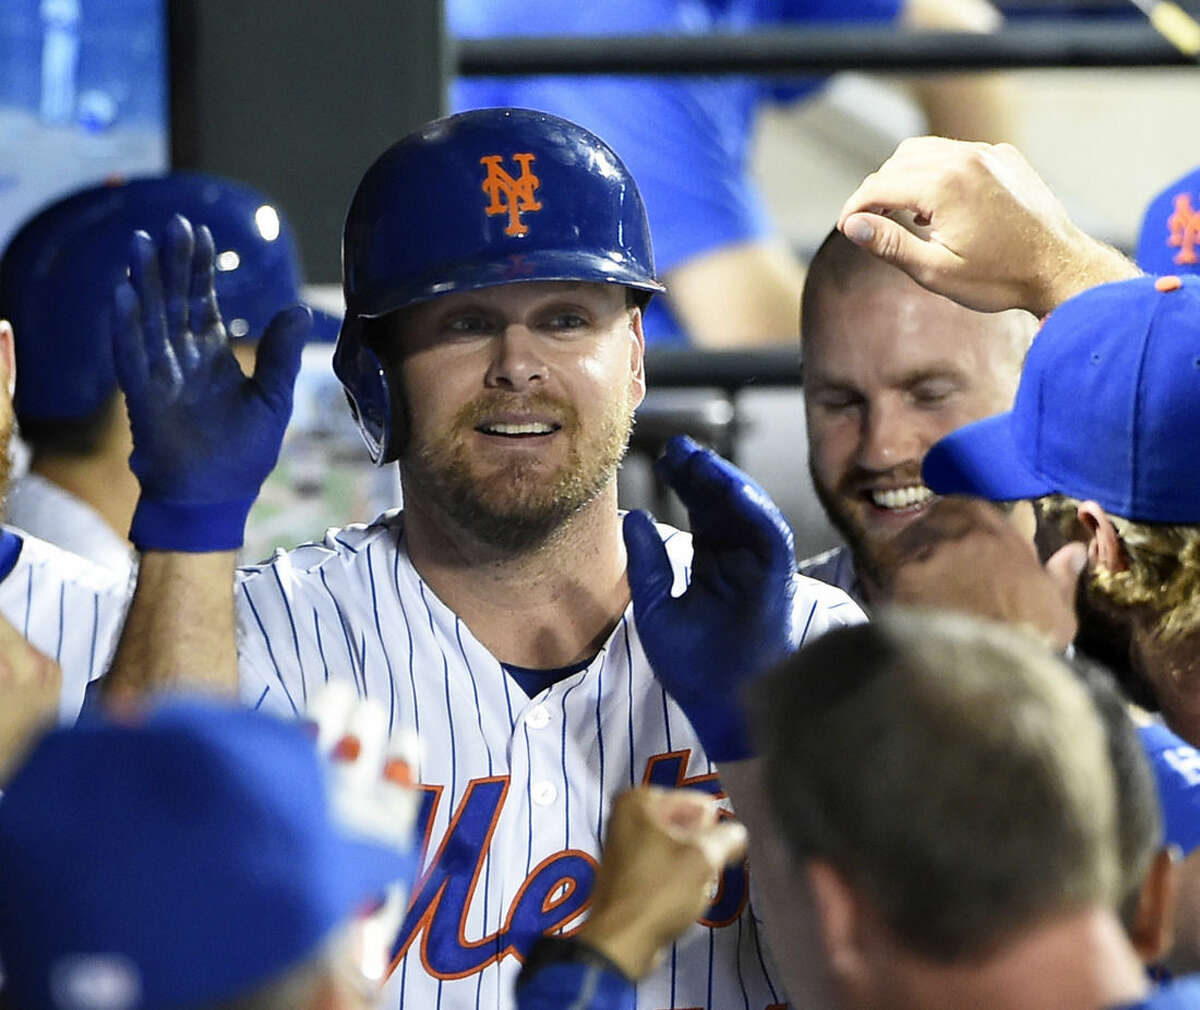 New York Mets' Lucas Duda is congratulated by teammates in the dugout after hitting his second home run of a baseball game against the Washington Nationals in the seventh inning at Citi Field on Saturday, Aug. 1, 2015, in New York. (AP Photo/Kathy Kmonicek)